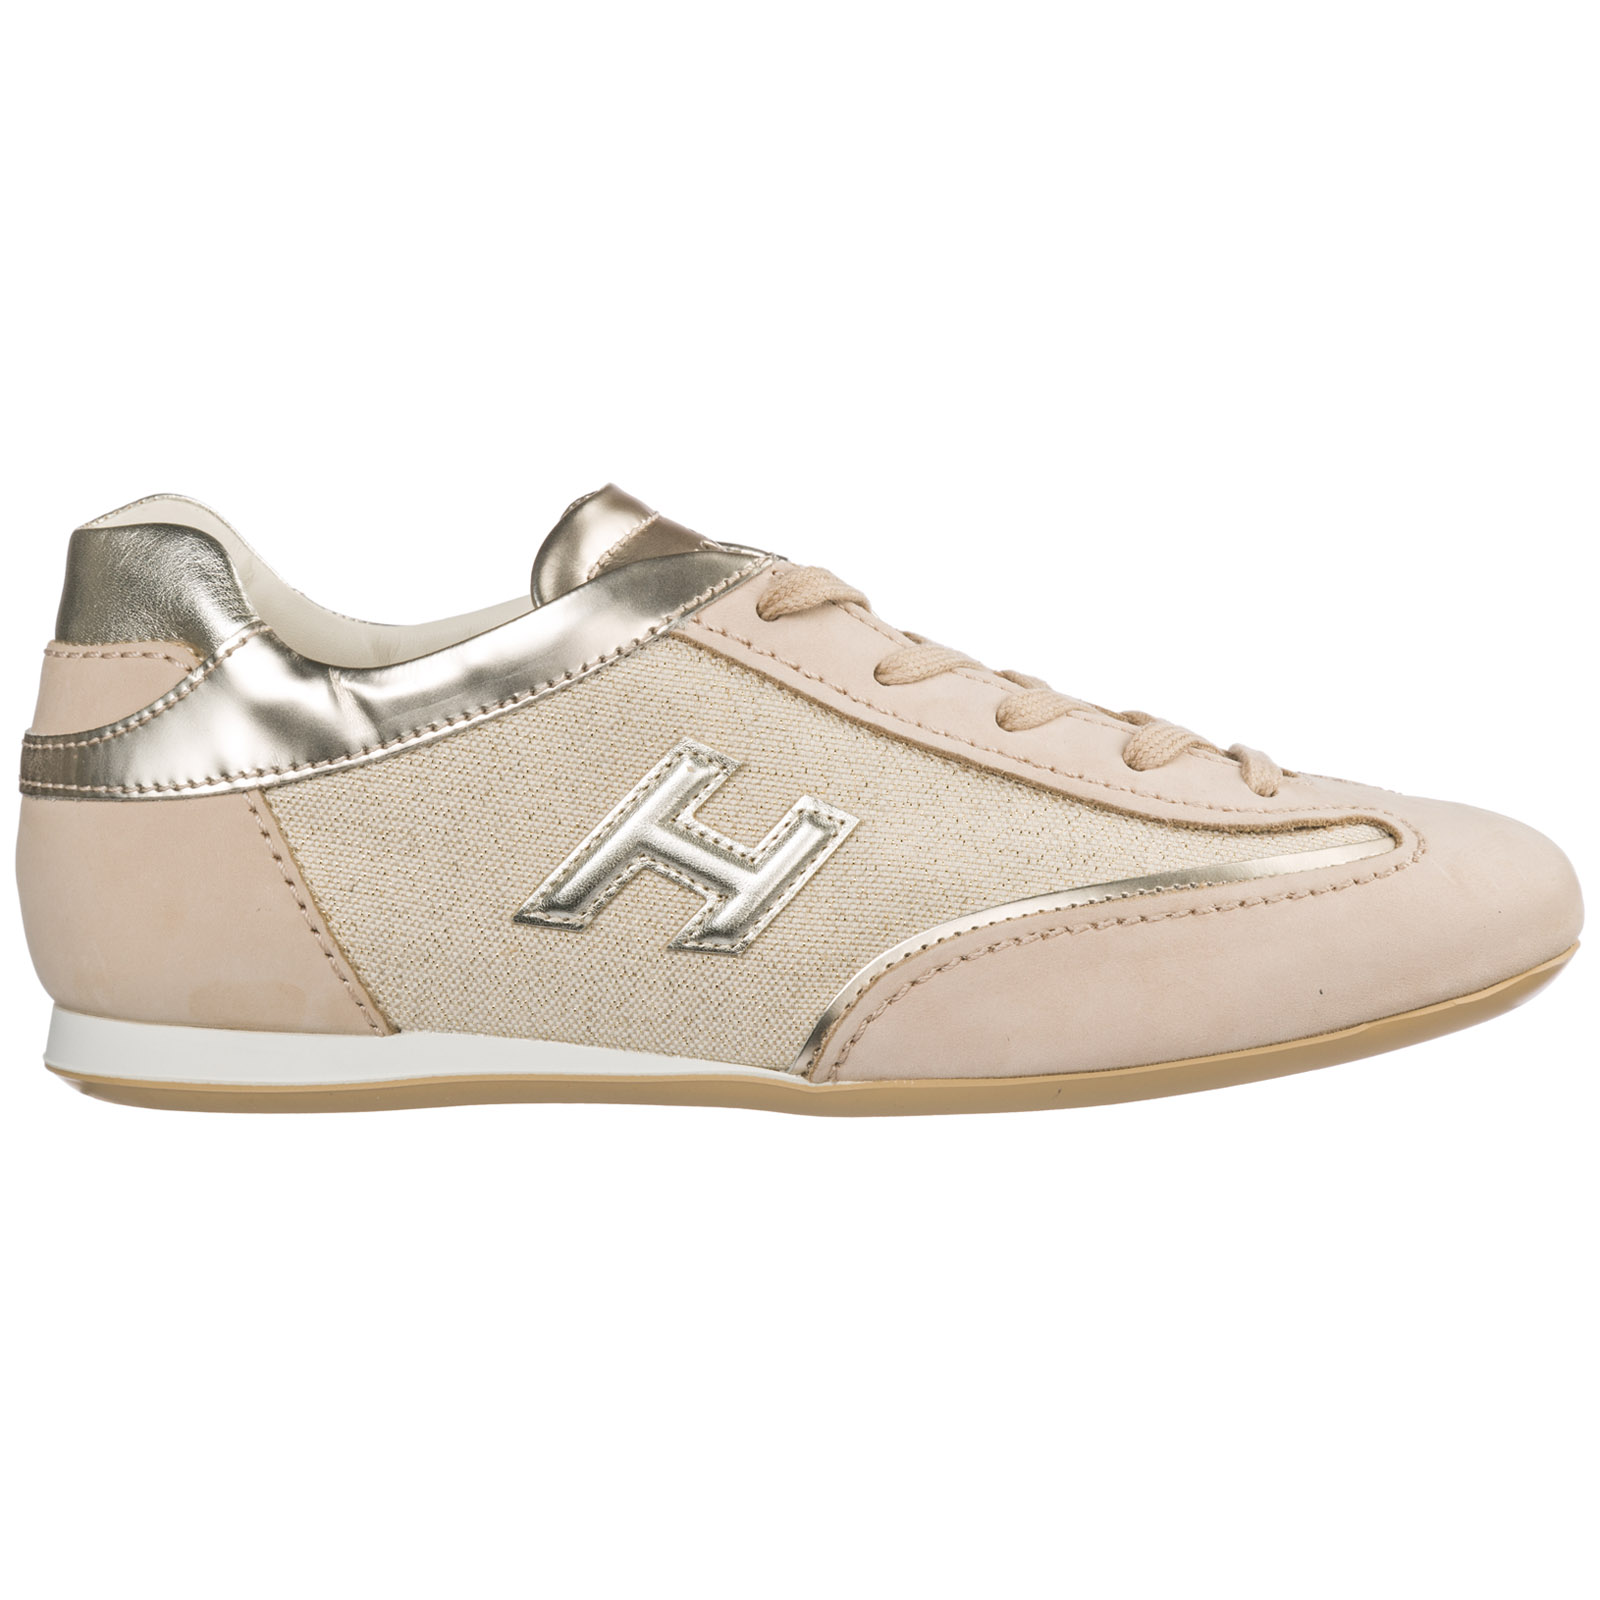 Hogan Women's Shoes Leather Trainers Sneakers Olympia In Beige ...